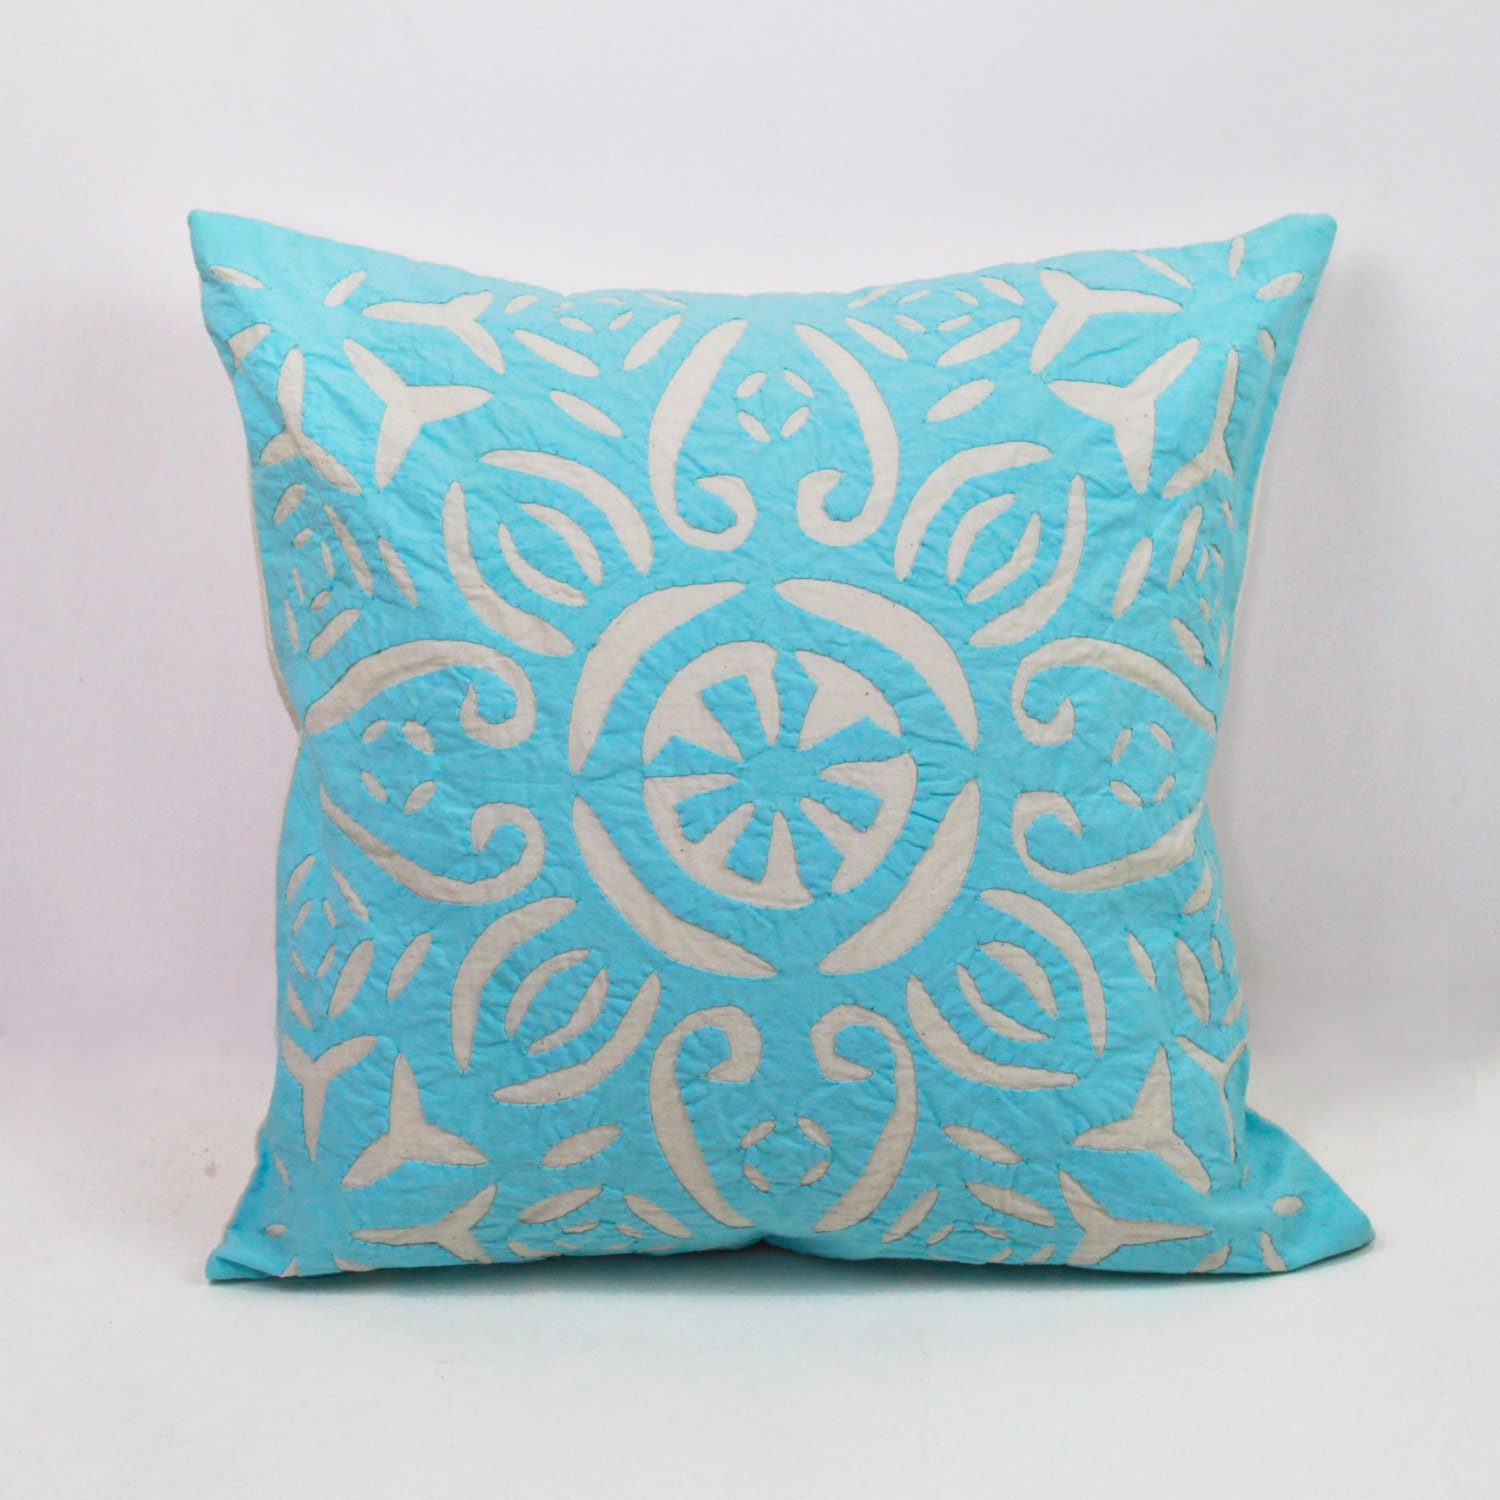 blue and white pillows handmade pillows decorative by urbanhutch. Black Bedroom Furniture Sets. Home Design Ideas